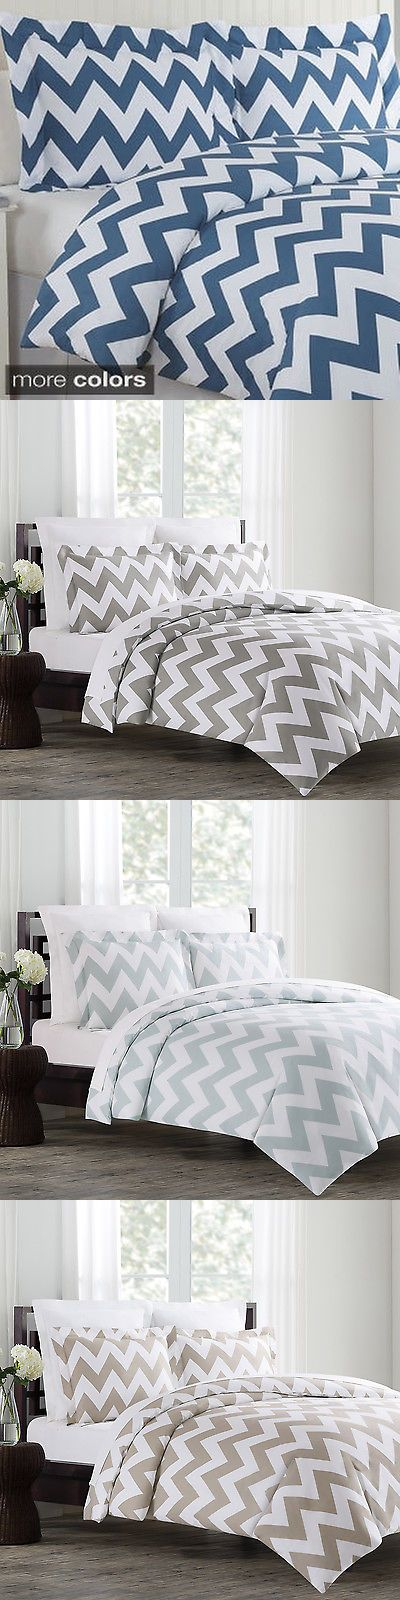 Duvet Covers and Sets 37644: Echelon Home Chevron 3-Piece Cotton Duvet Cover Set -> BUY IT NOW ONLY: $80.99 on eBay!